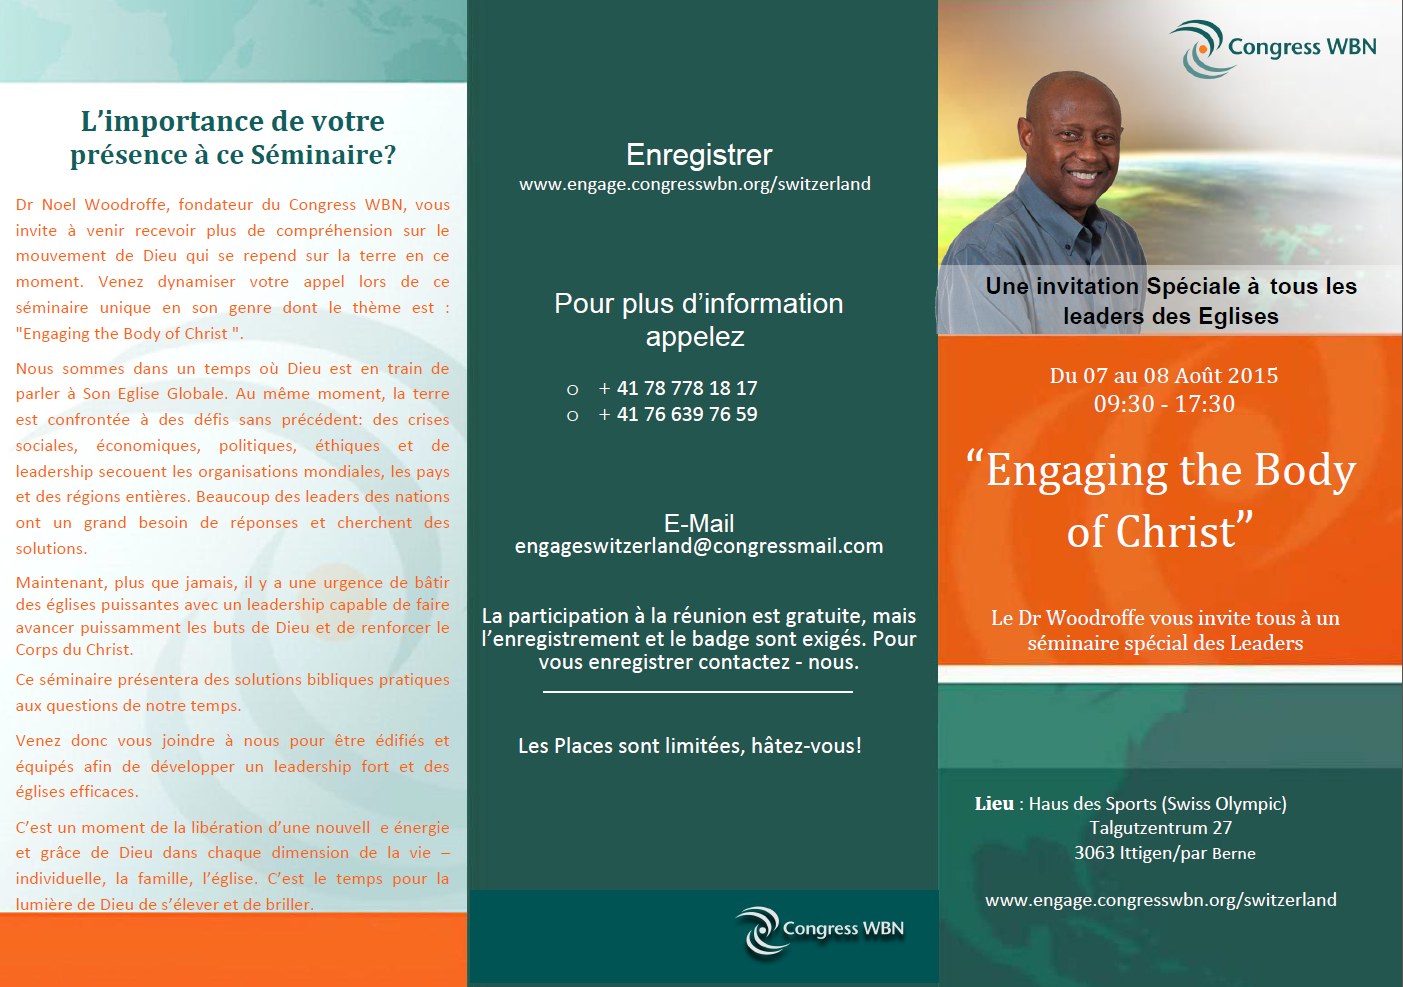 CH_Engagement Seminar Brochure_French.png